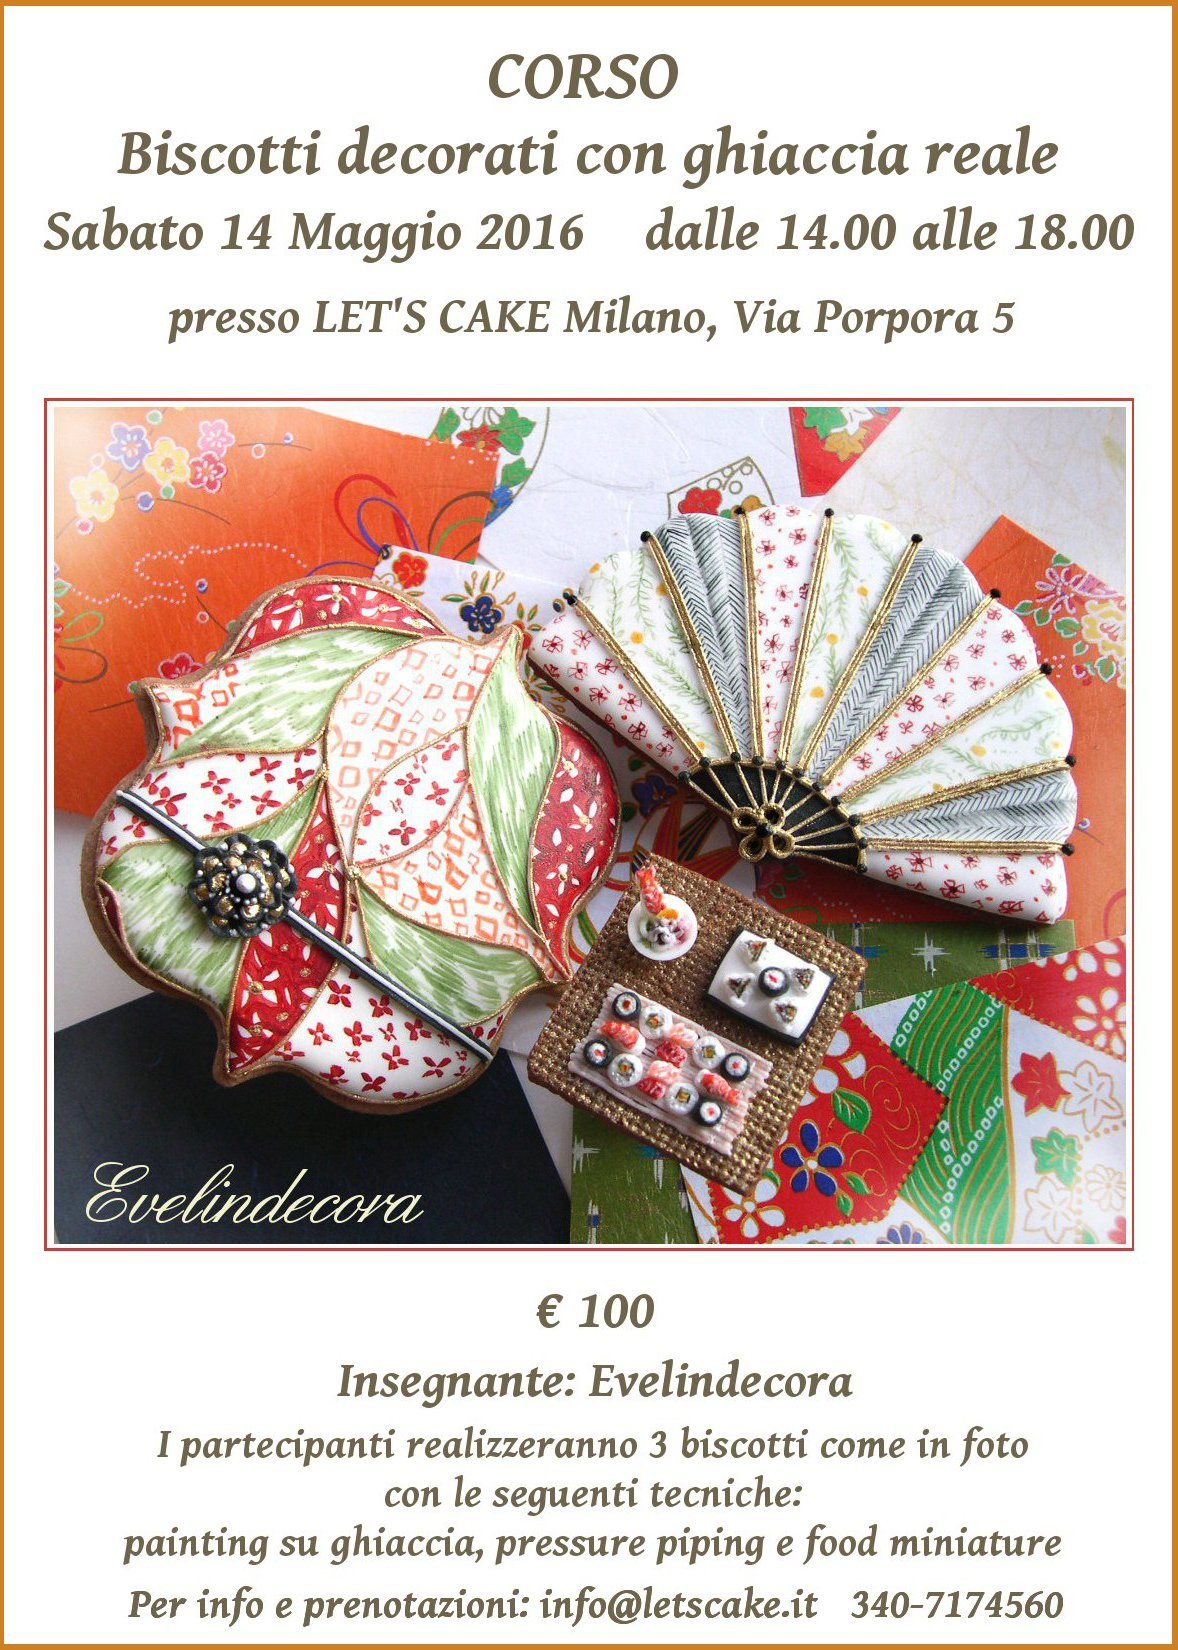 corso ghiaccia reale evelindecora 2016 Biscotti decorati - Tecniche: miniatura, edible food miniature, sushi cookie, lace, luster dust, pressure piping.